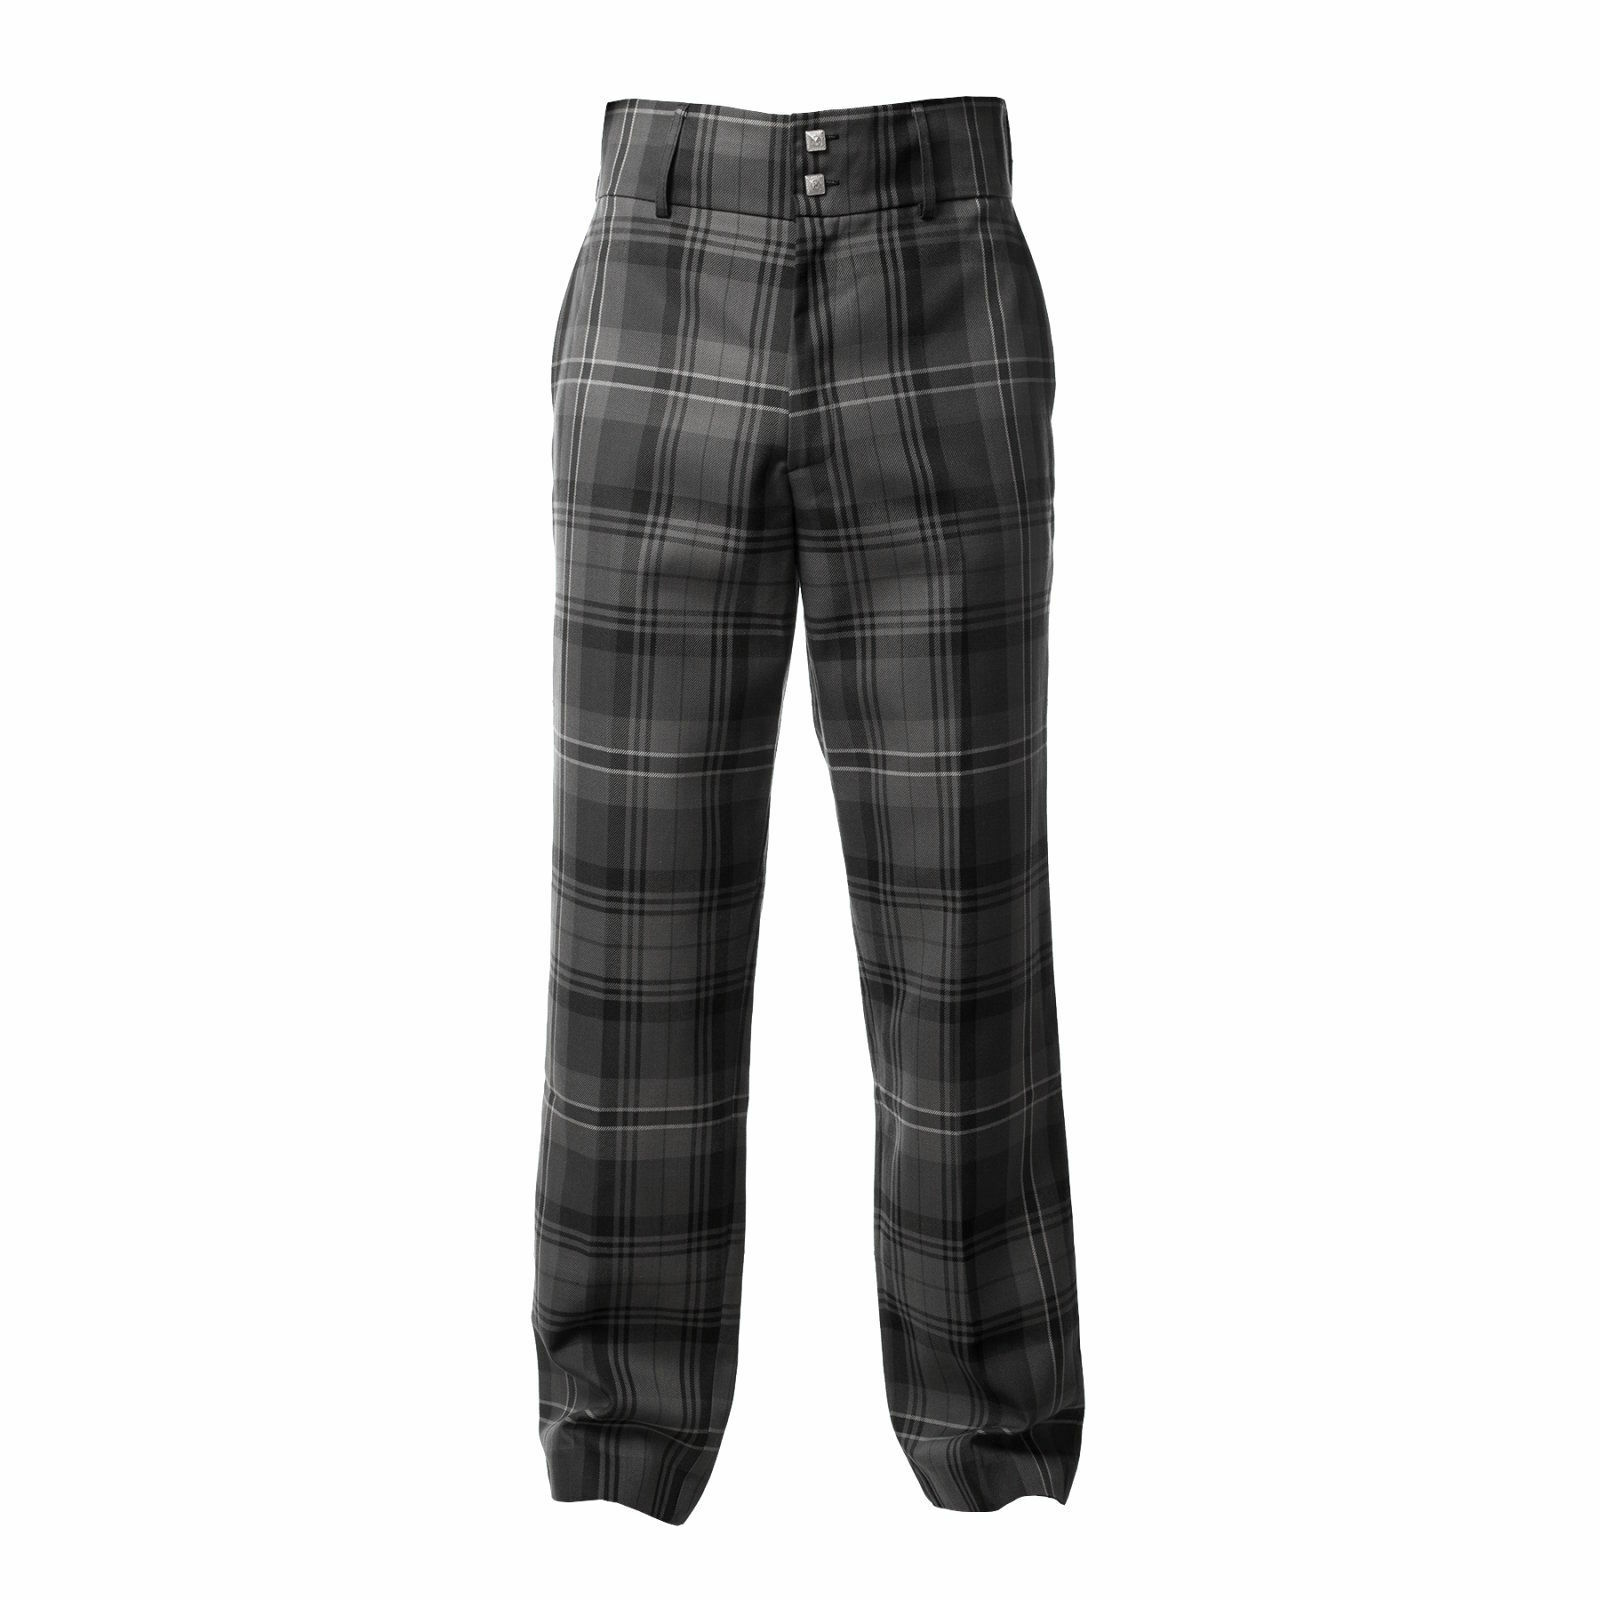 Mens Hamilton Grey Tartan Trousers Trews